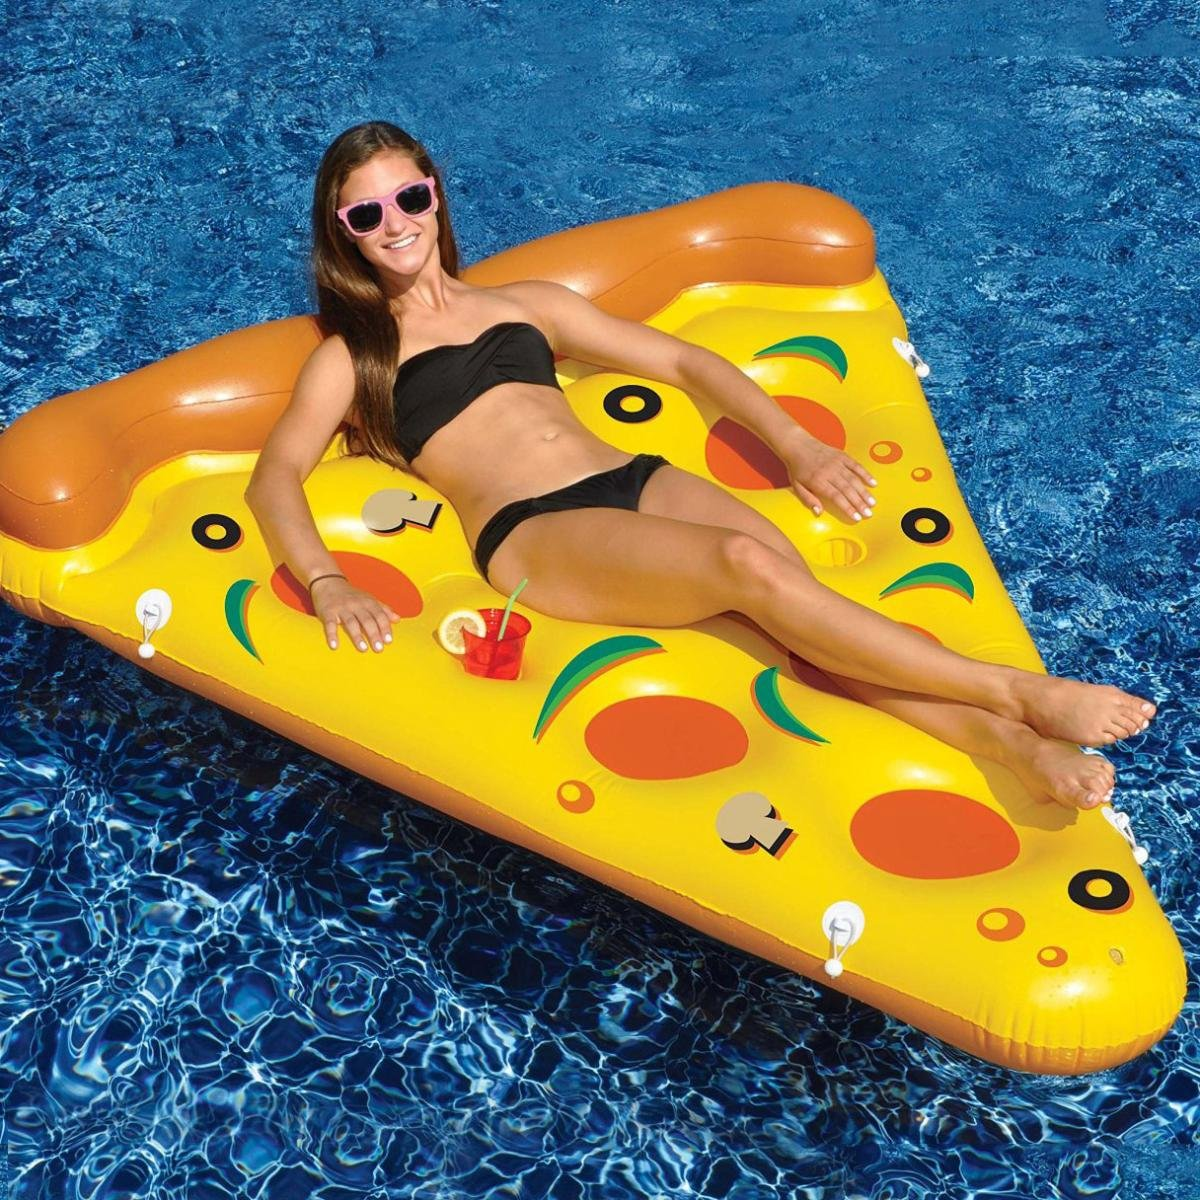 Swimline Giant Inflatable Pizza Slice for Swmming Pool (8 Pack) by Swimline (Image #2)